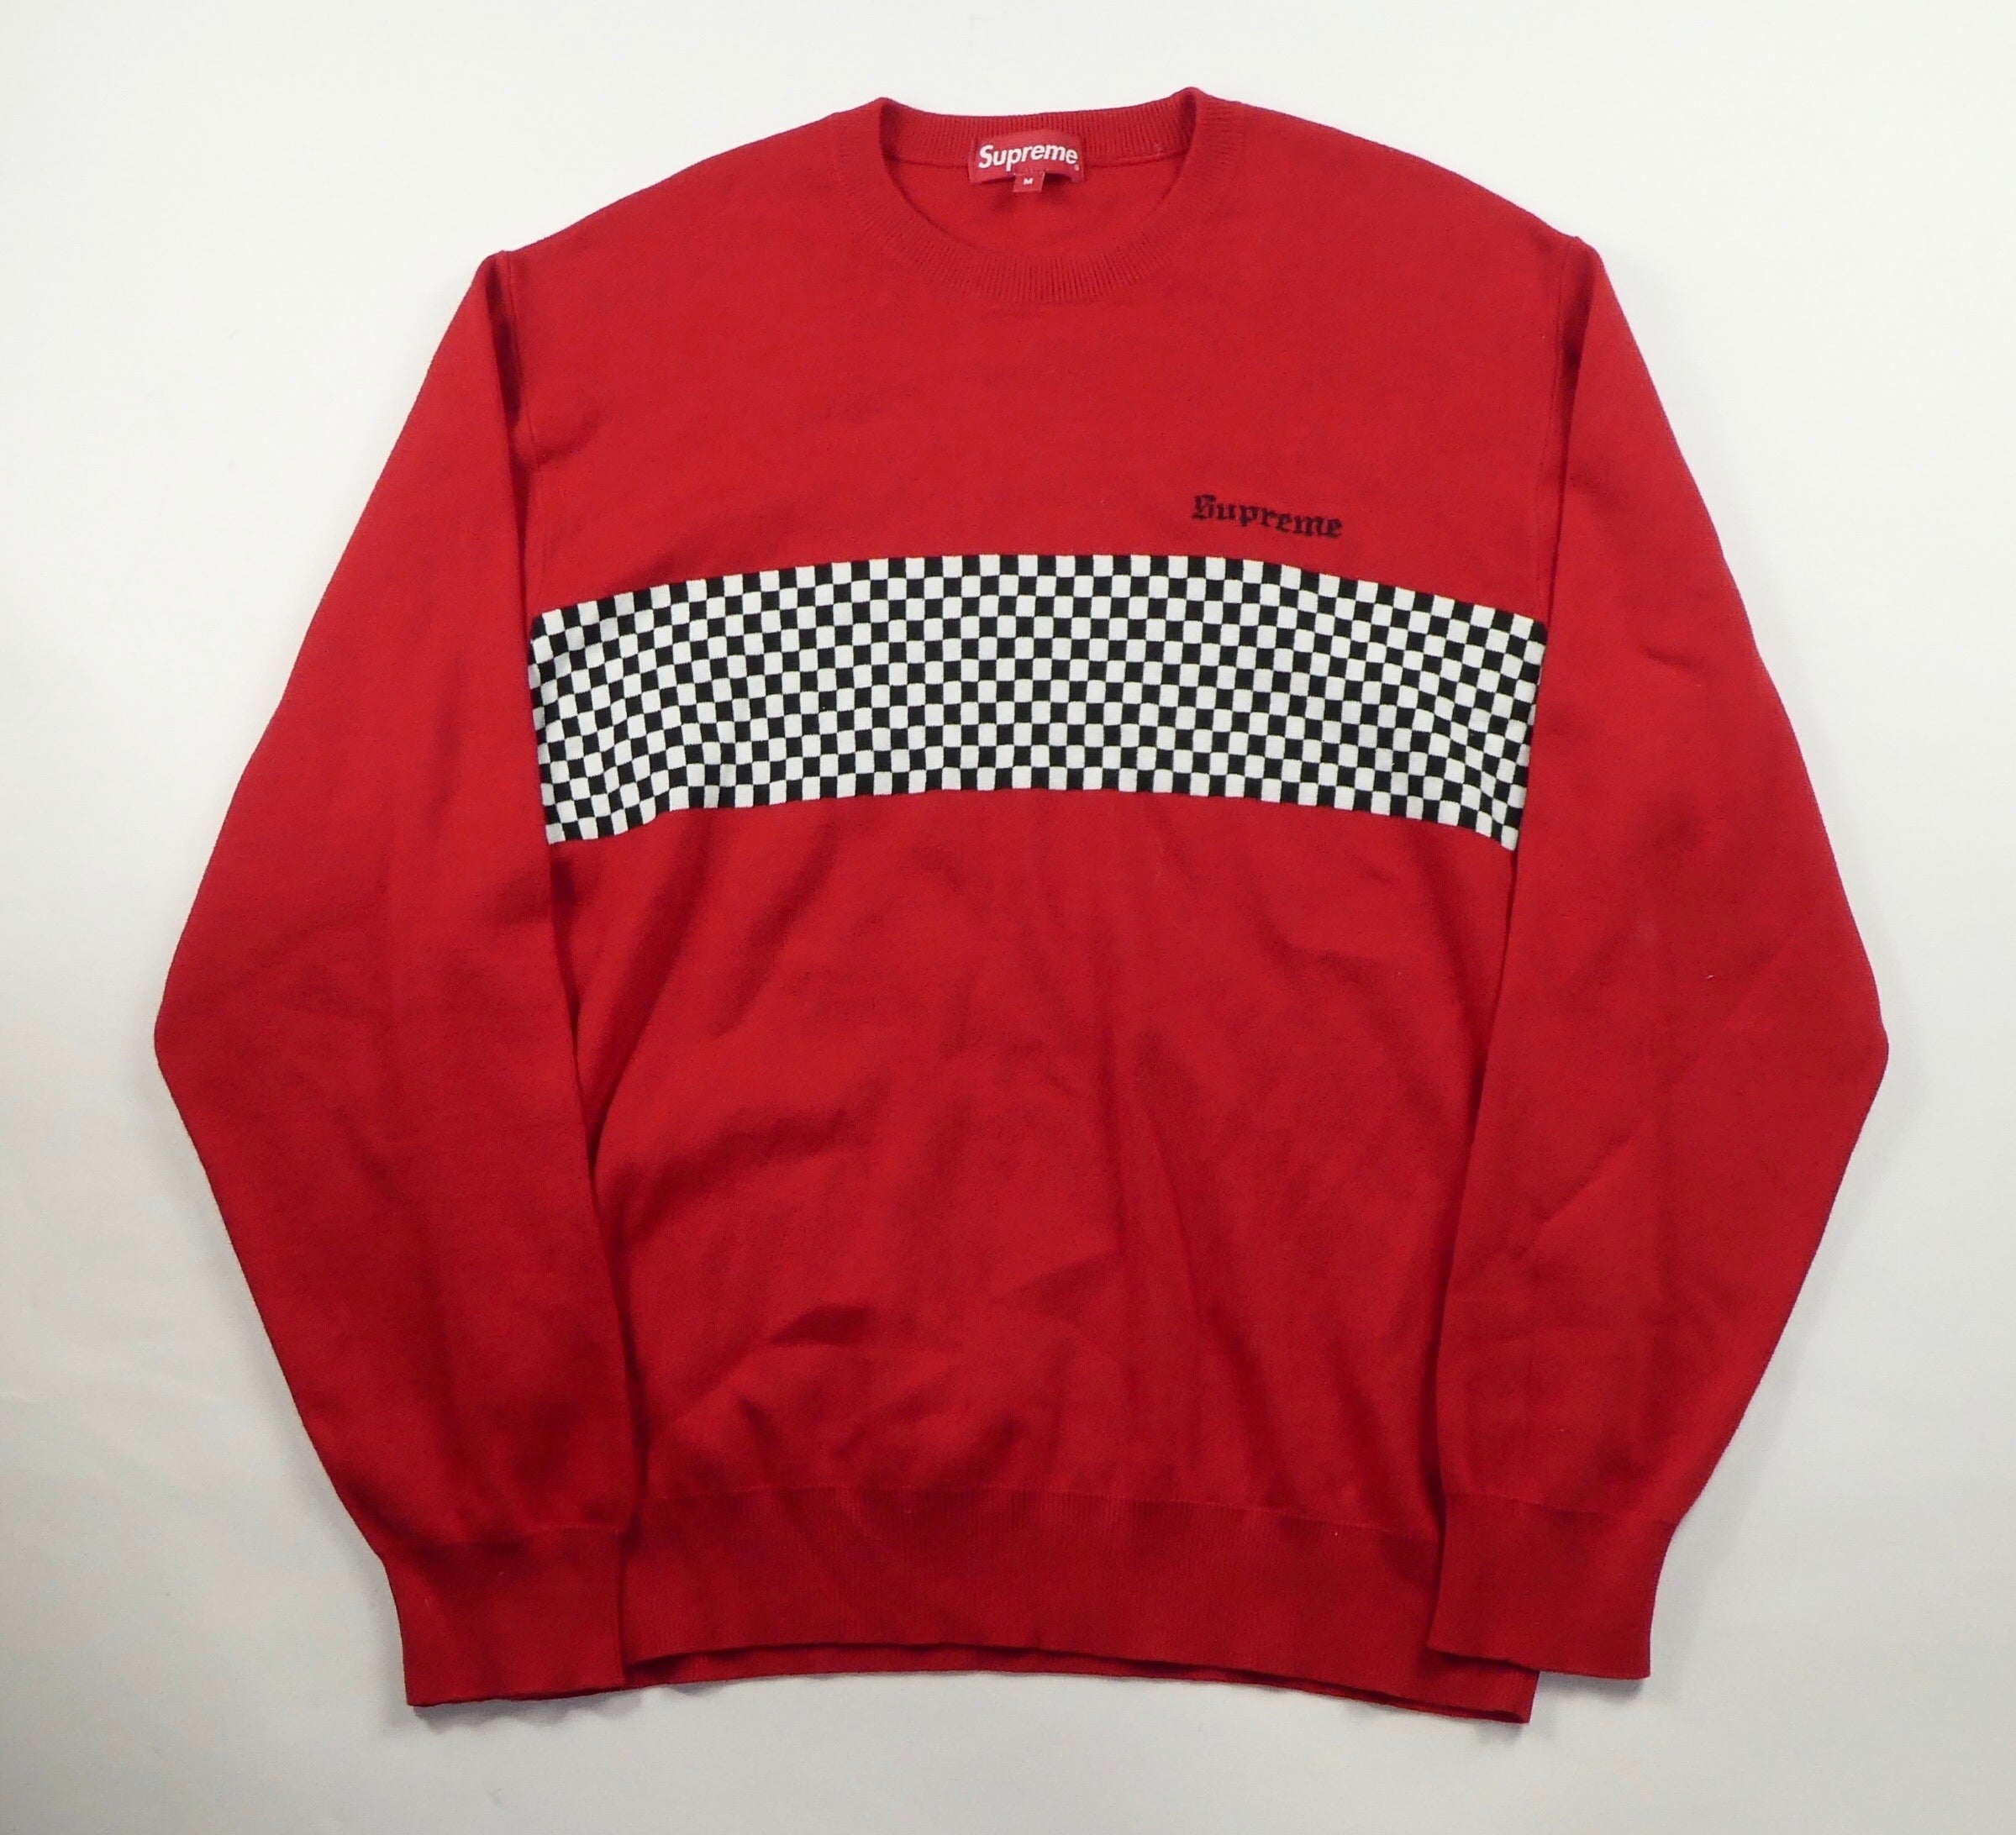 Supreme Checkerboard Jumper - Medium